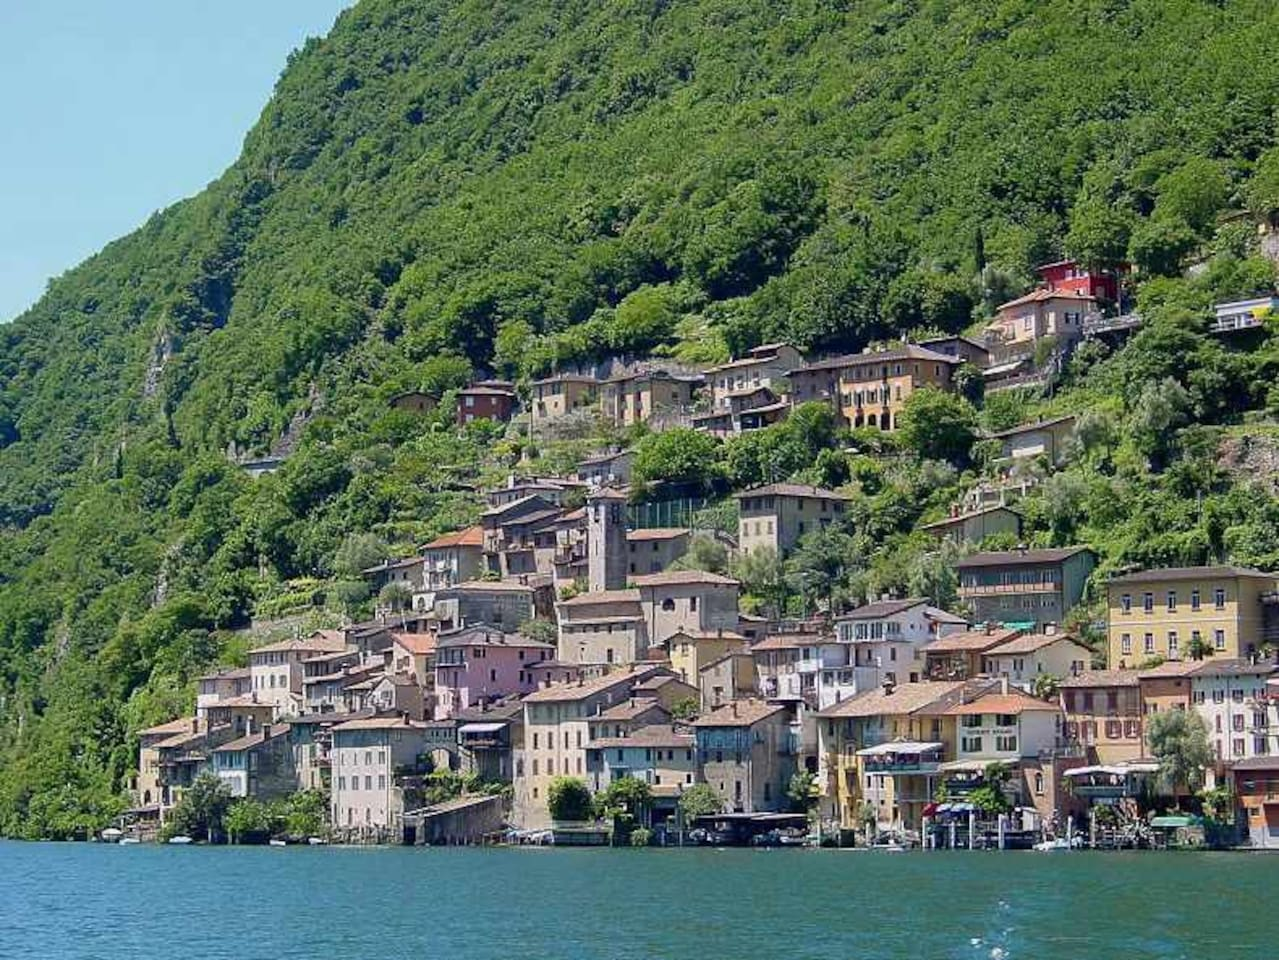 View of Gandria from the lake - the Casa Parrucchiere is right across from the church